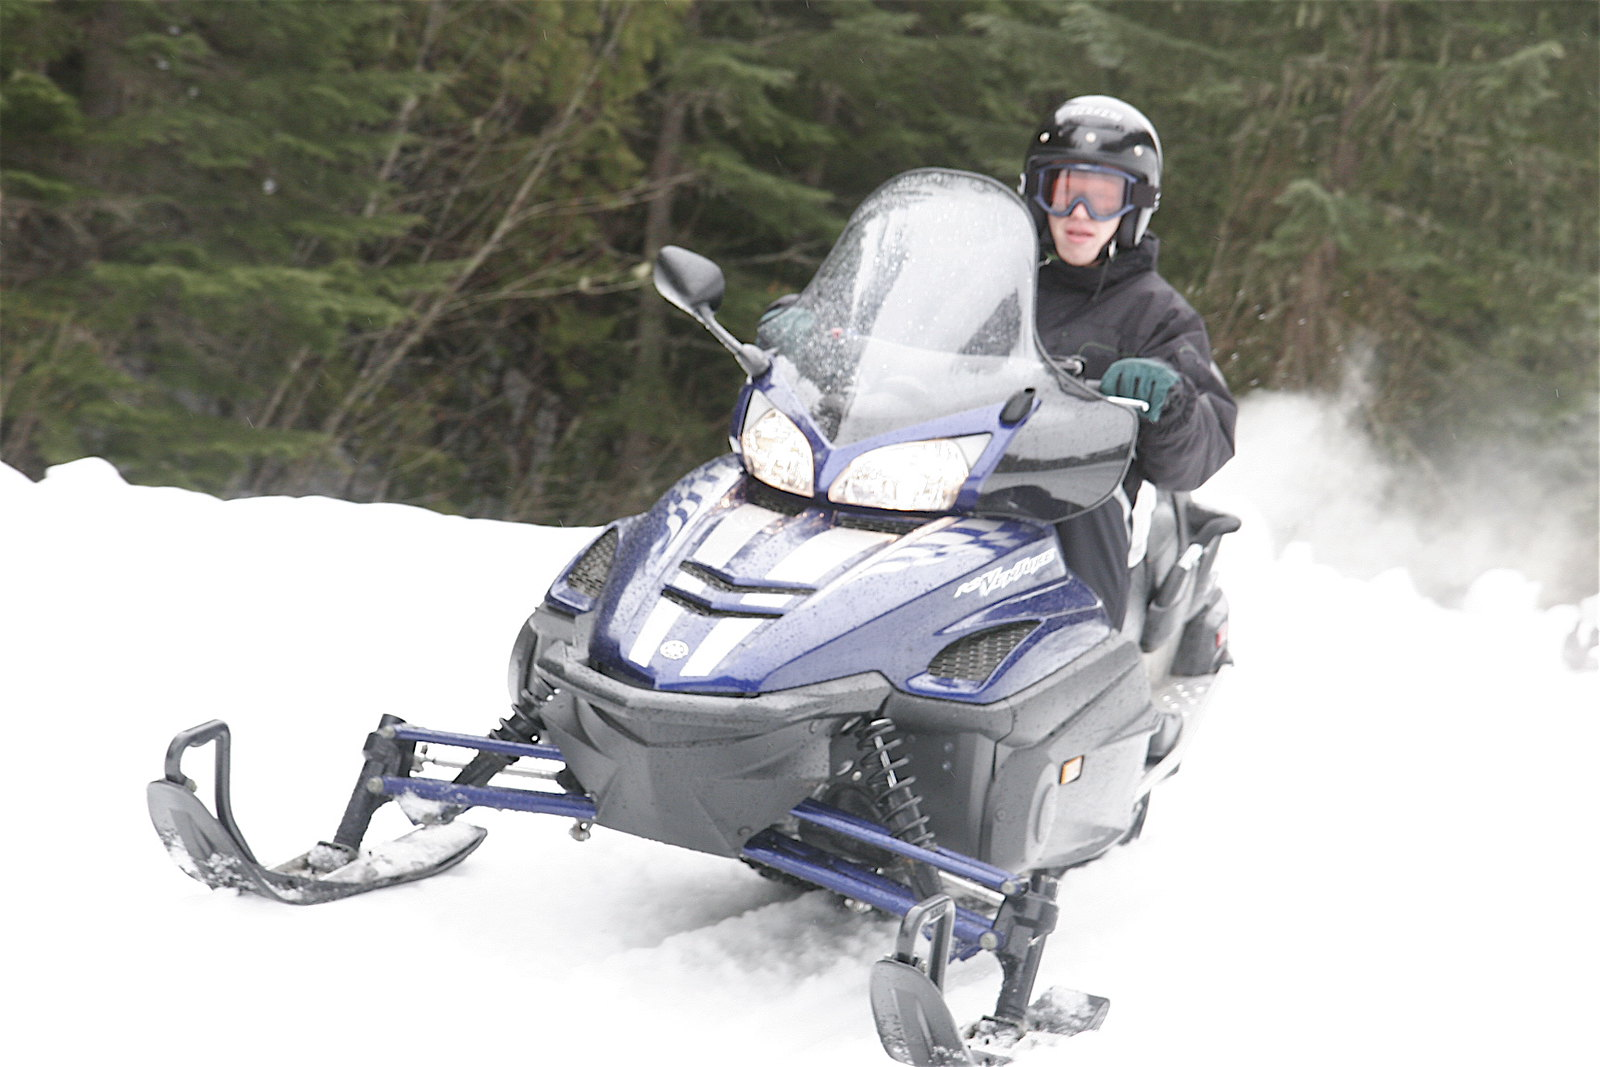 Photo of a person riding a snowmobile